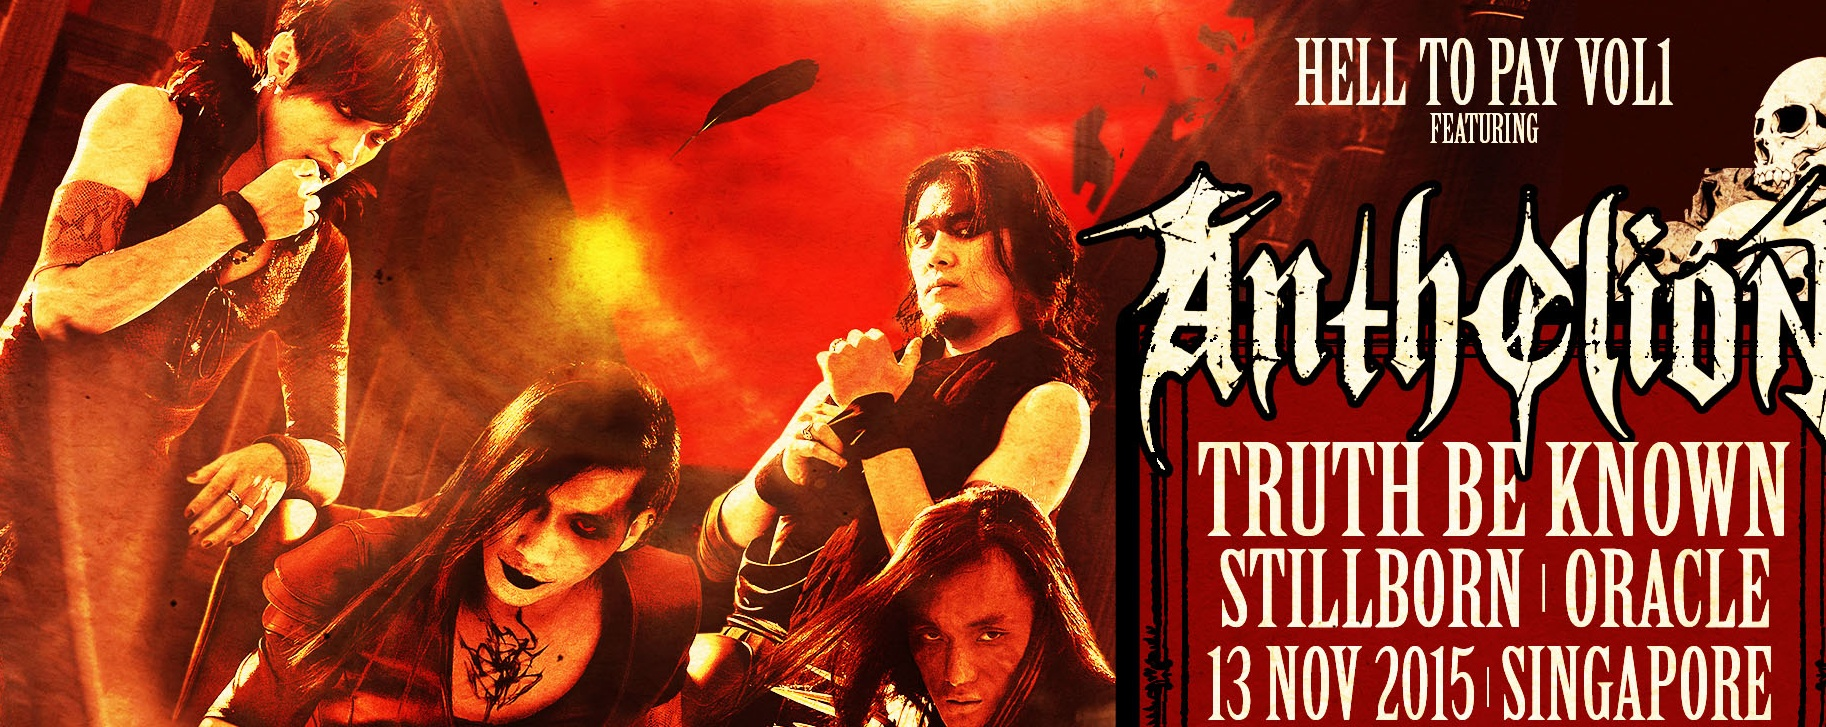 Hell to Pay vol1: Anthelion (Taiwan) Live in Singapore